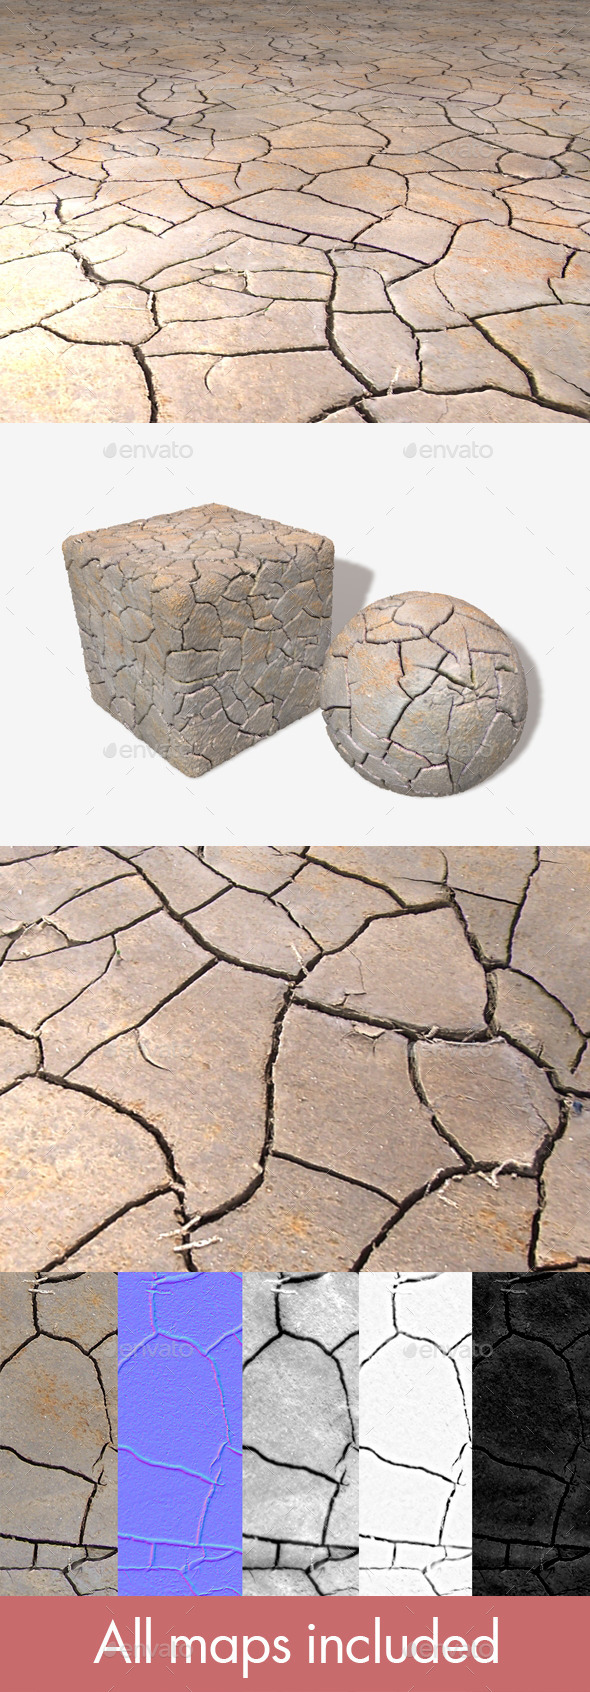 Cracked Mud Seamless Texture - 3DOcean Item for Sale